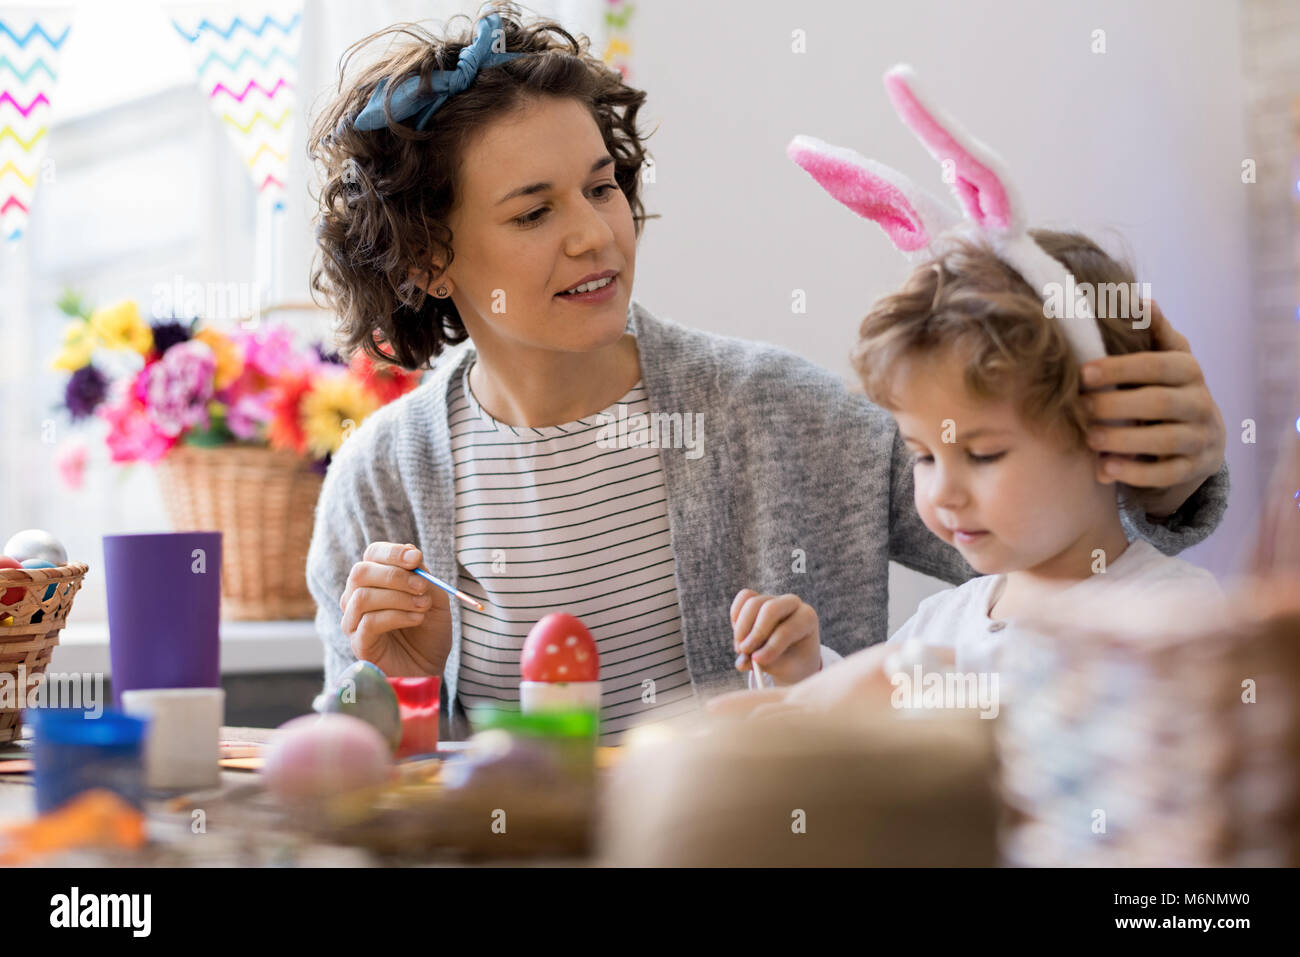 Mother and Son Painting Easter Eggs - Stock Image